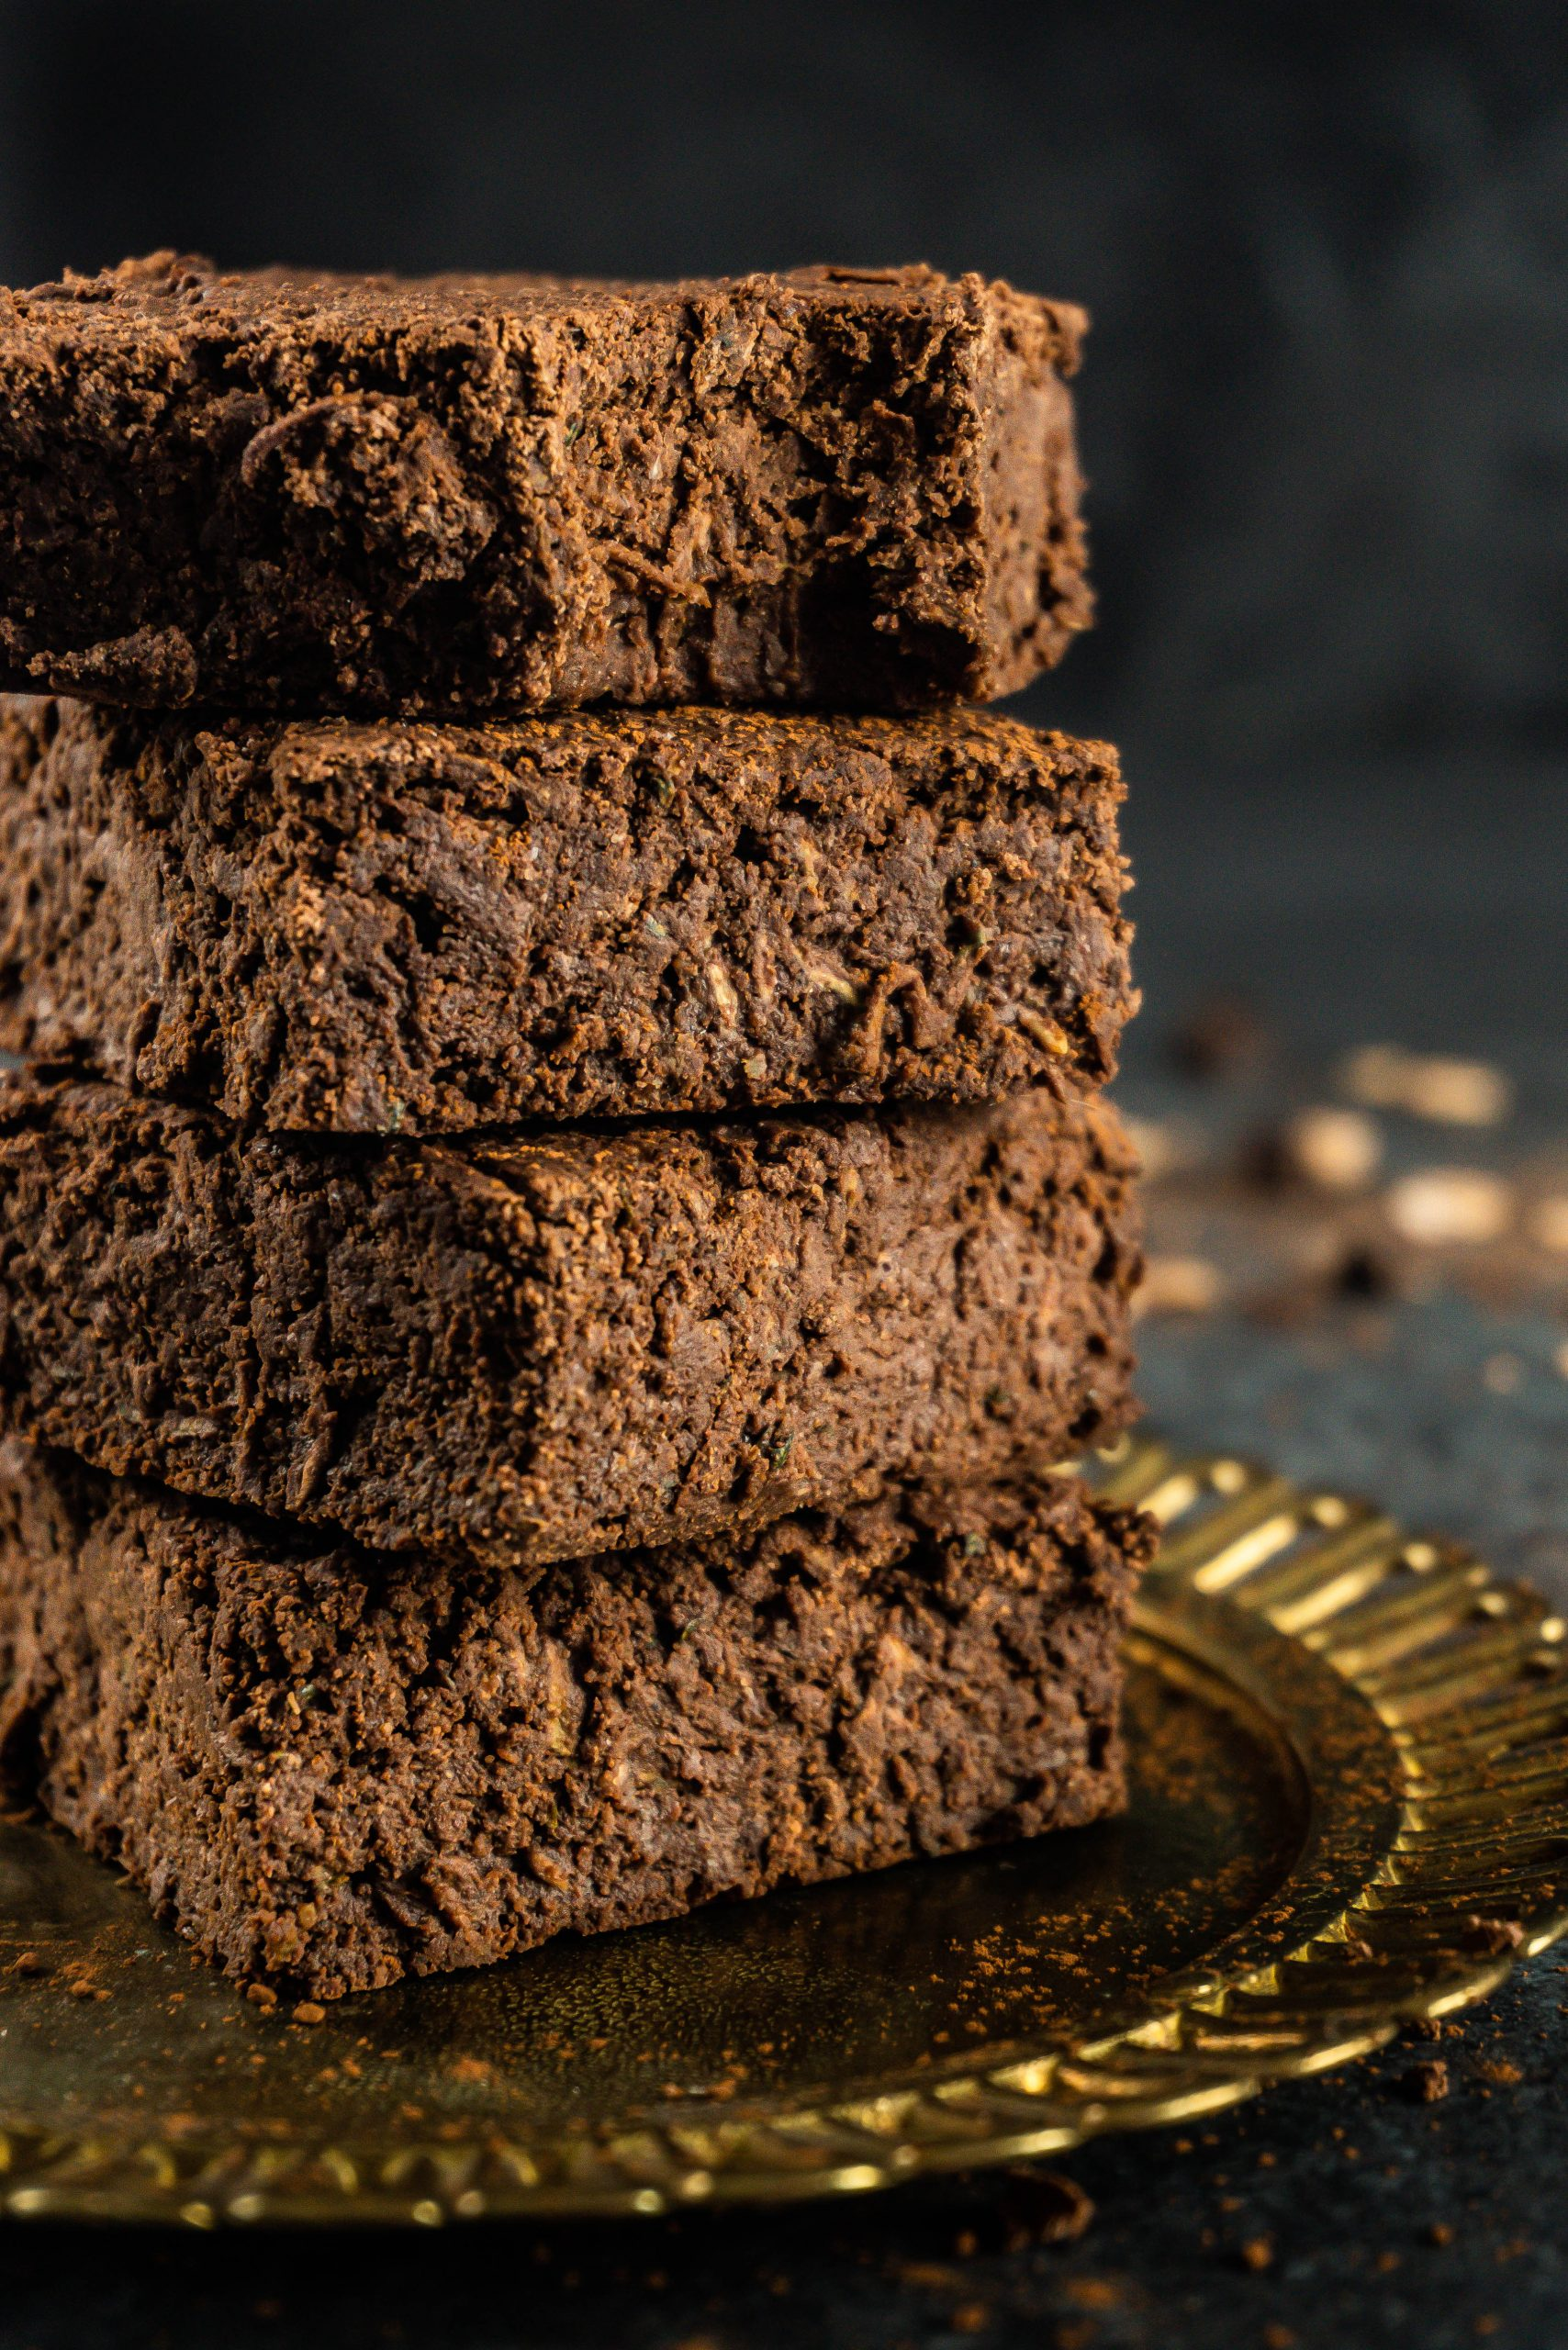 Vegan and Gluten-free Zucchini Brownies stacked on a small gold plate with the top one missing a bite, photographed up close